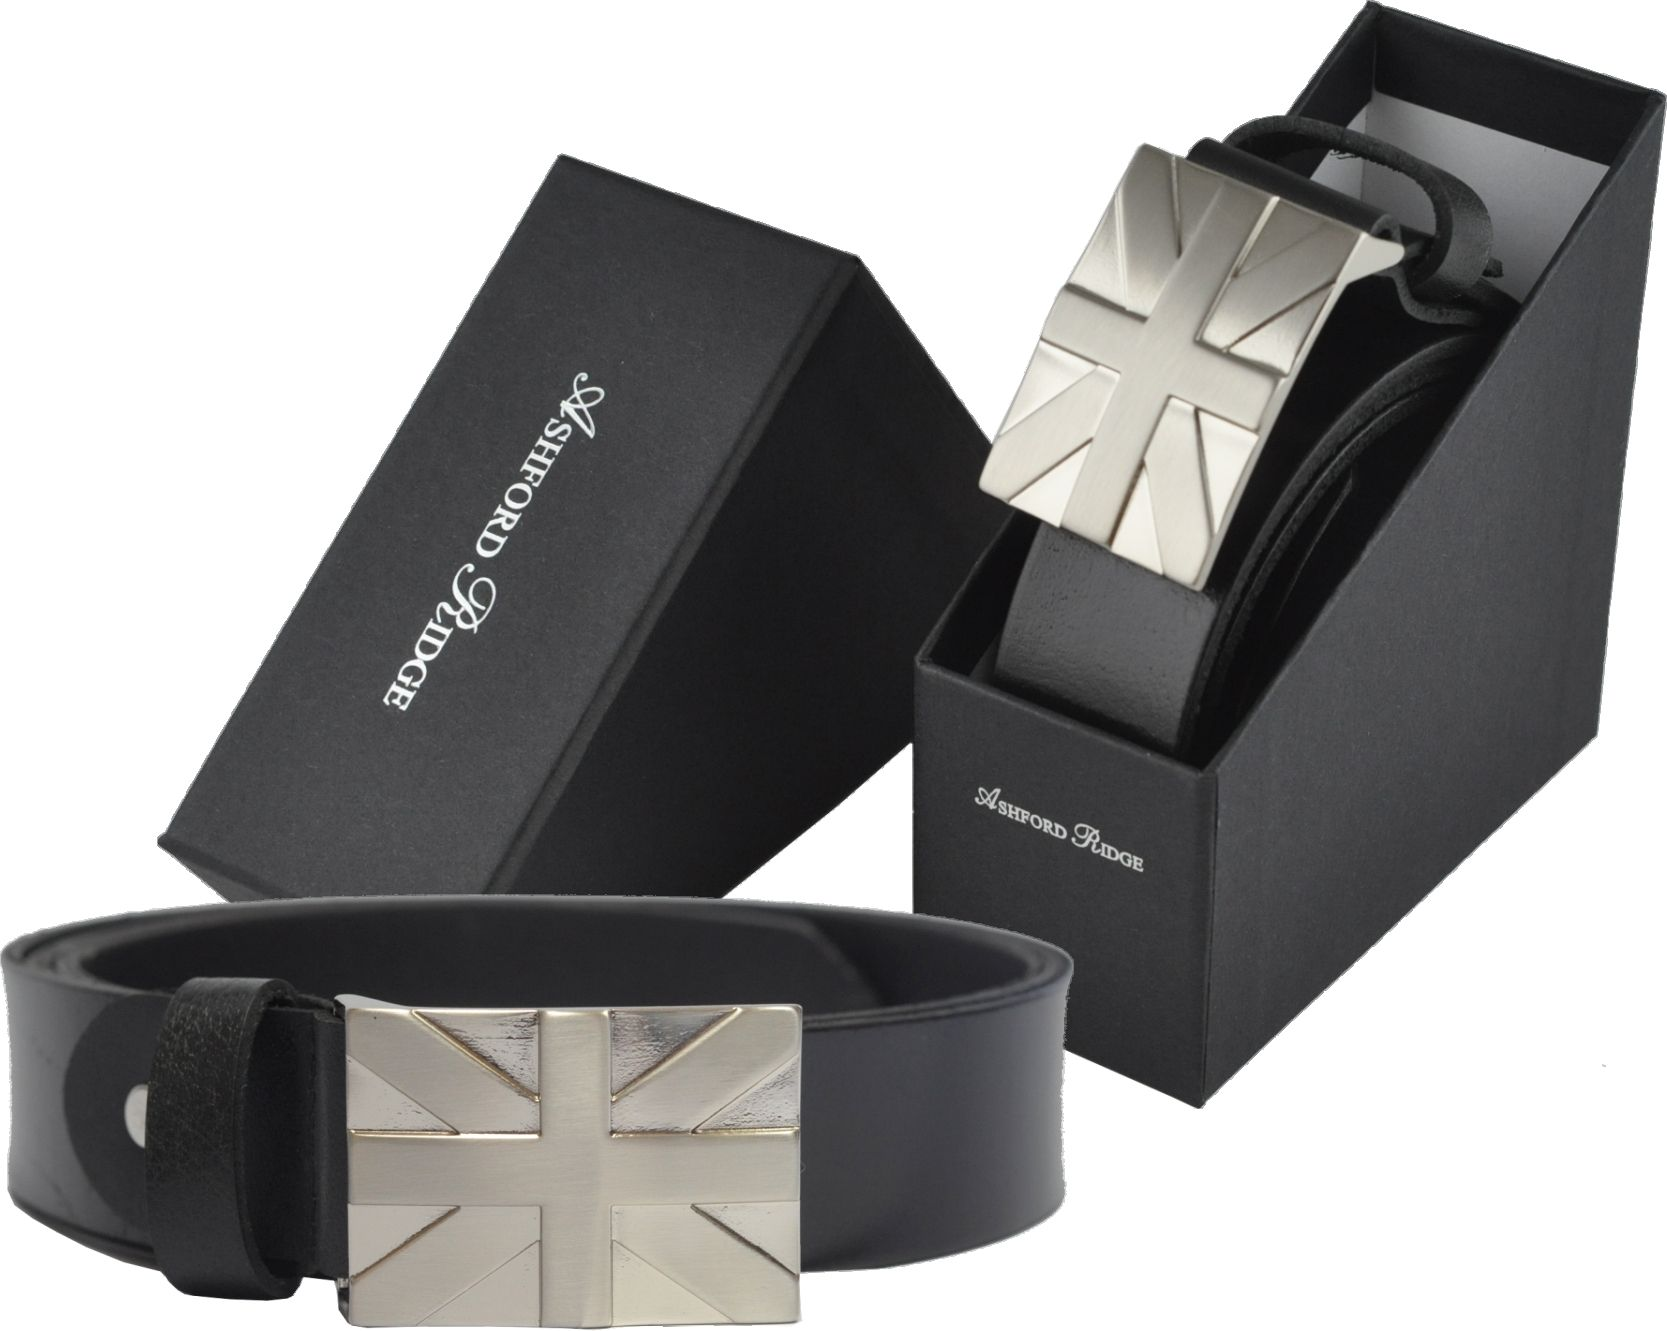 Gift Boxed Mens Classic Full Grain Leather Belt with Union Jack Buckle Made in UK Black or Brown